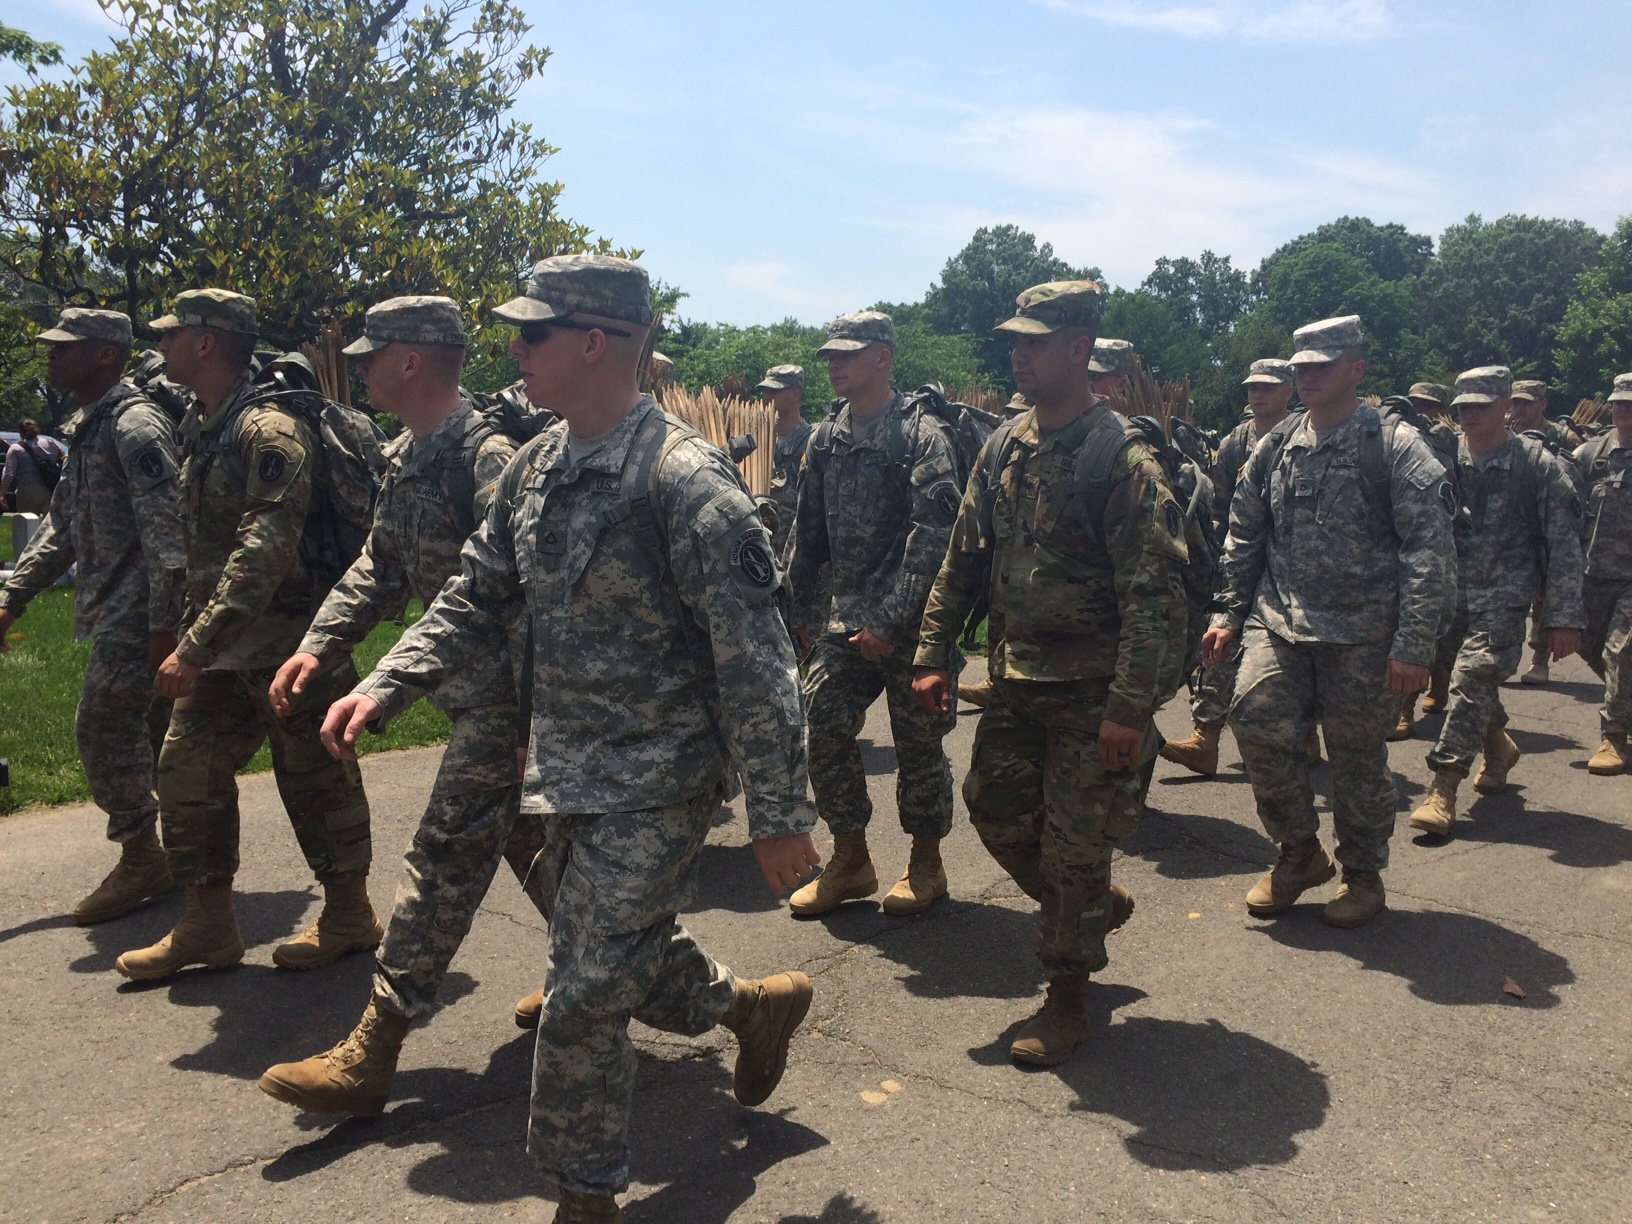 Soldiers place 230K flags in annual event at Arlington National Cemetery